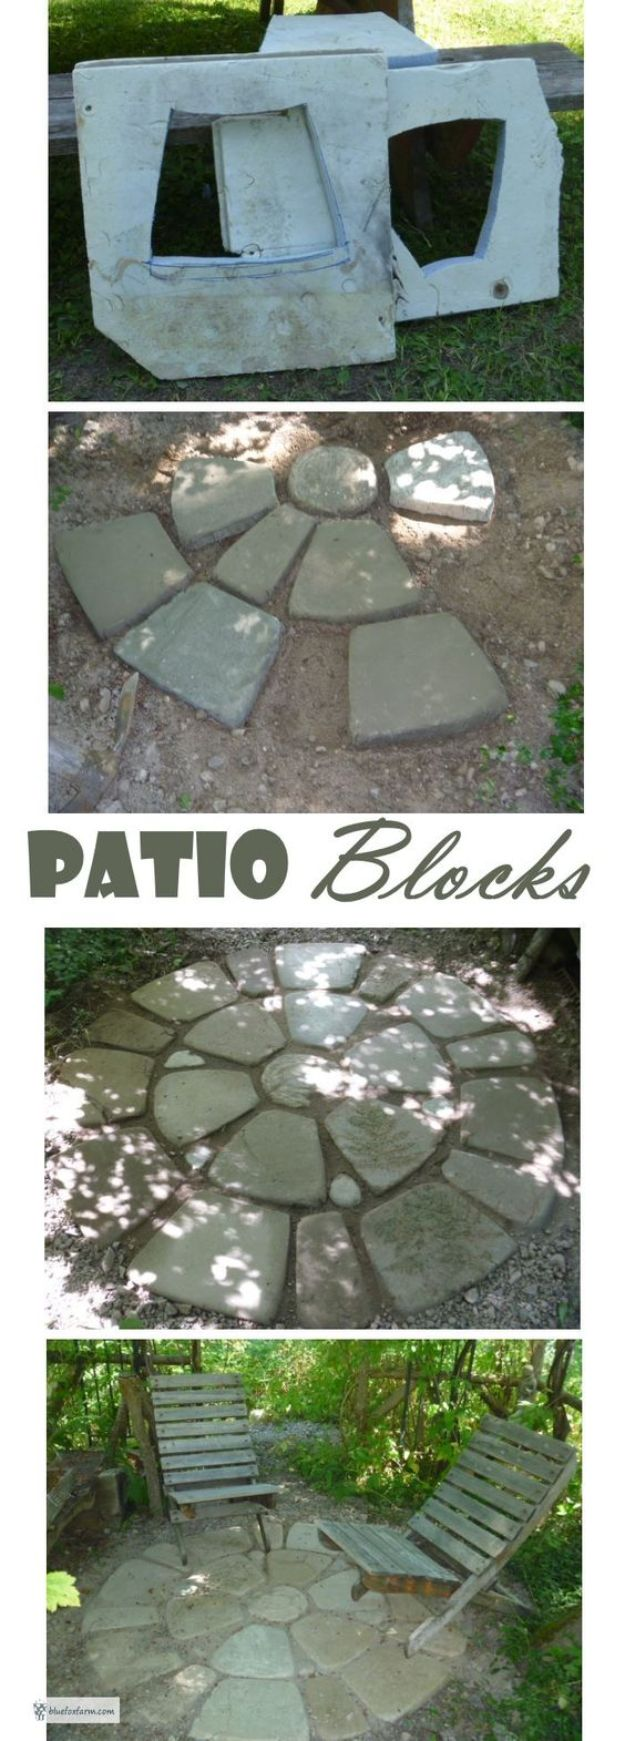 DIY Walkways - Patio Blocks - Do It Yourself Walkway Ideas for Paths to The Front Door and Backyard - Cheap and Easy Pavers and Concrete Path and Stepping Stones - Wood and Edging, Lights, Backyard and Patio Walks With Gravel, Sand, Dirt and Brick #diyideas